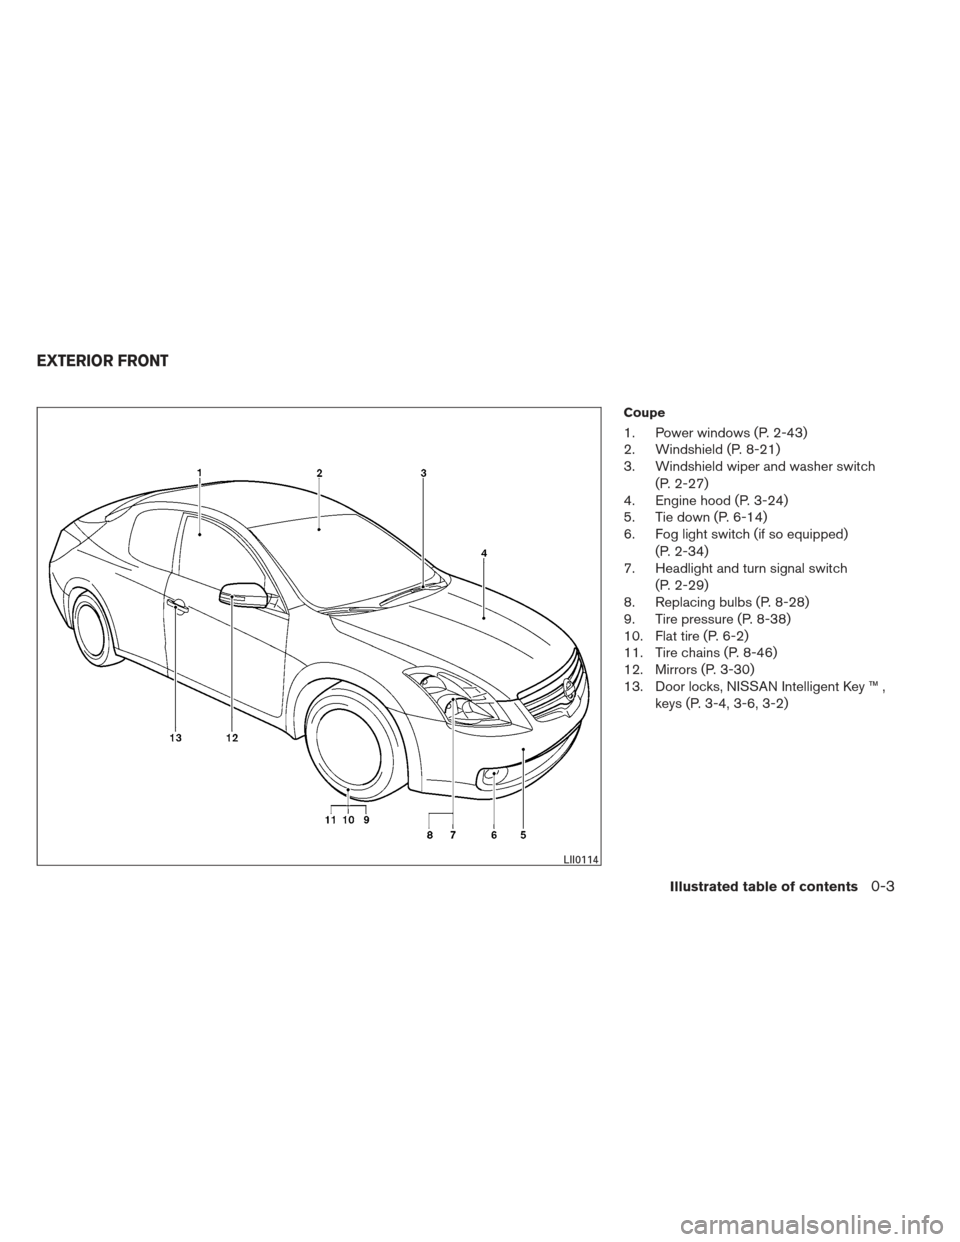 NISSAN ALTIMA COUPE 2012 D32 / 4.G Owners Manual, Page 10